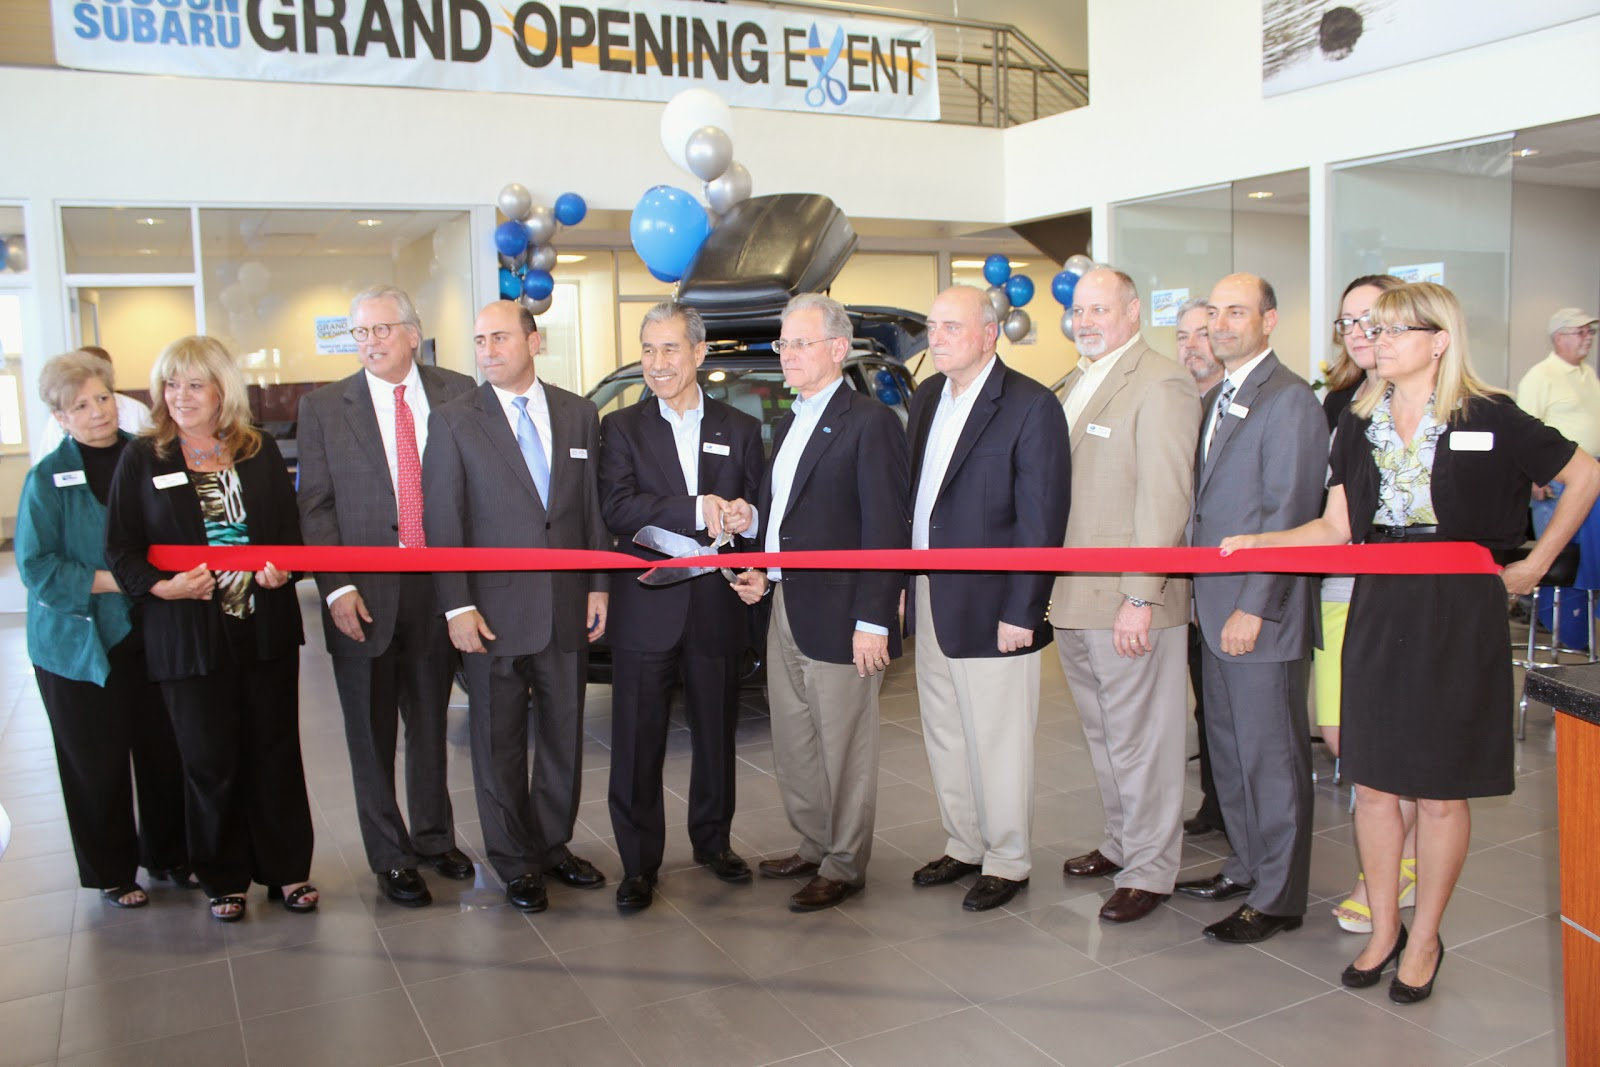 Tucson Subaru - Tucson Subaru's owner's, Rocky and Mike DiChristofano are excited to announce the grand opening of their new location at 4901 N. Oracle Road, just south of River Road.  In celebration and honor of becoming the fastest growing Subaru dealership in the nation, Tucson Subaru hosted a Grand Opening Event on March 5th that was commenced with a Ribbon Cutting Ceremony by the Tucson Metro Chamber.  Guest of Honor Takeshi Tachimori, Subaru of America's Chairman  & CEO, was visiting from Japan for the event.